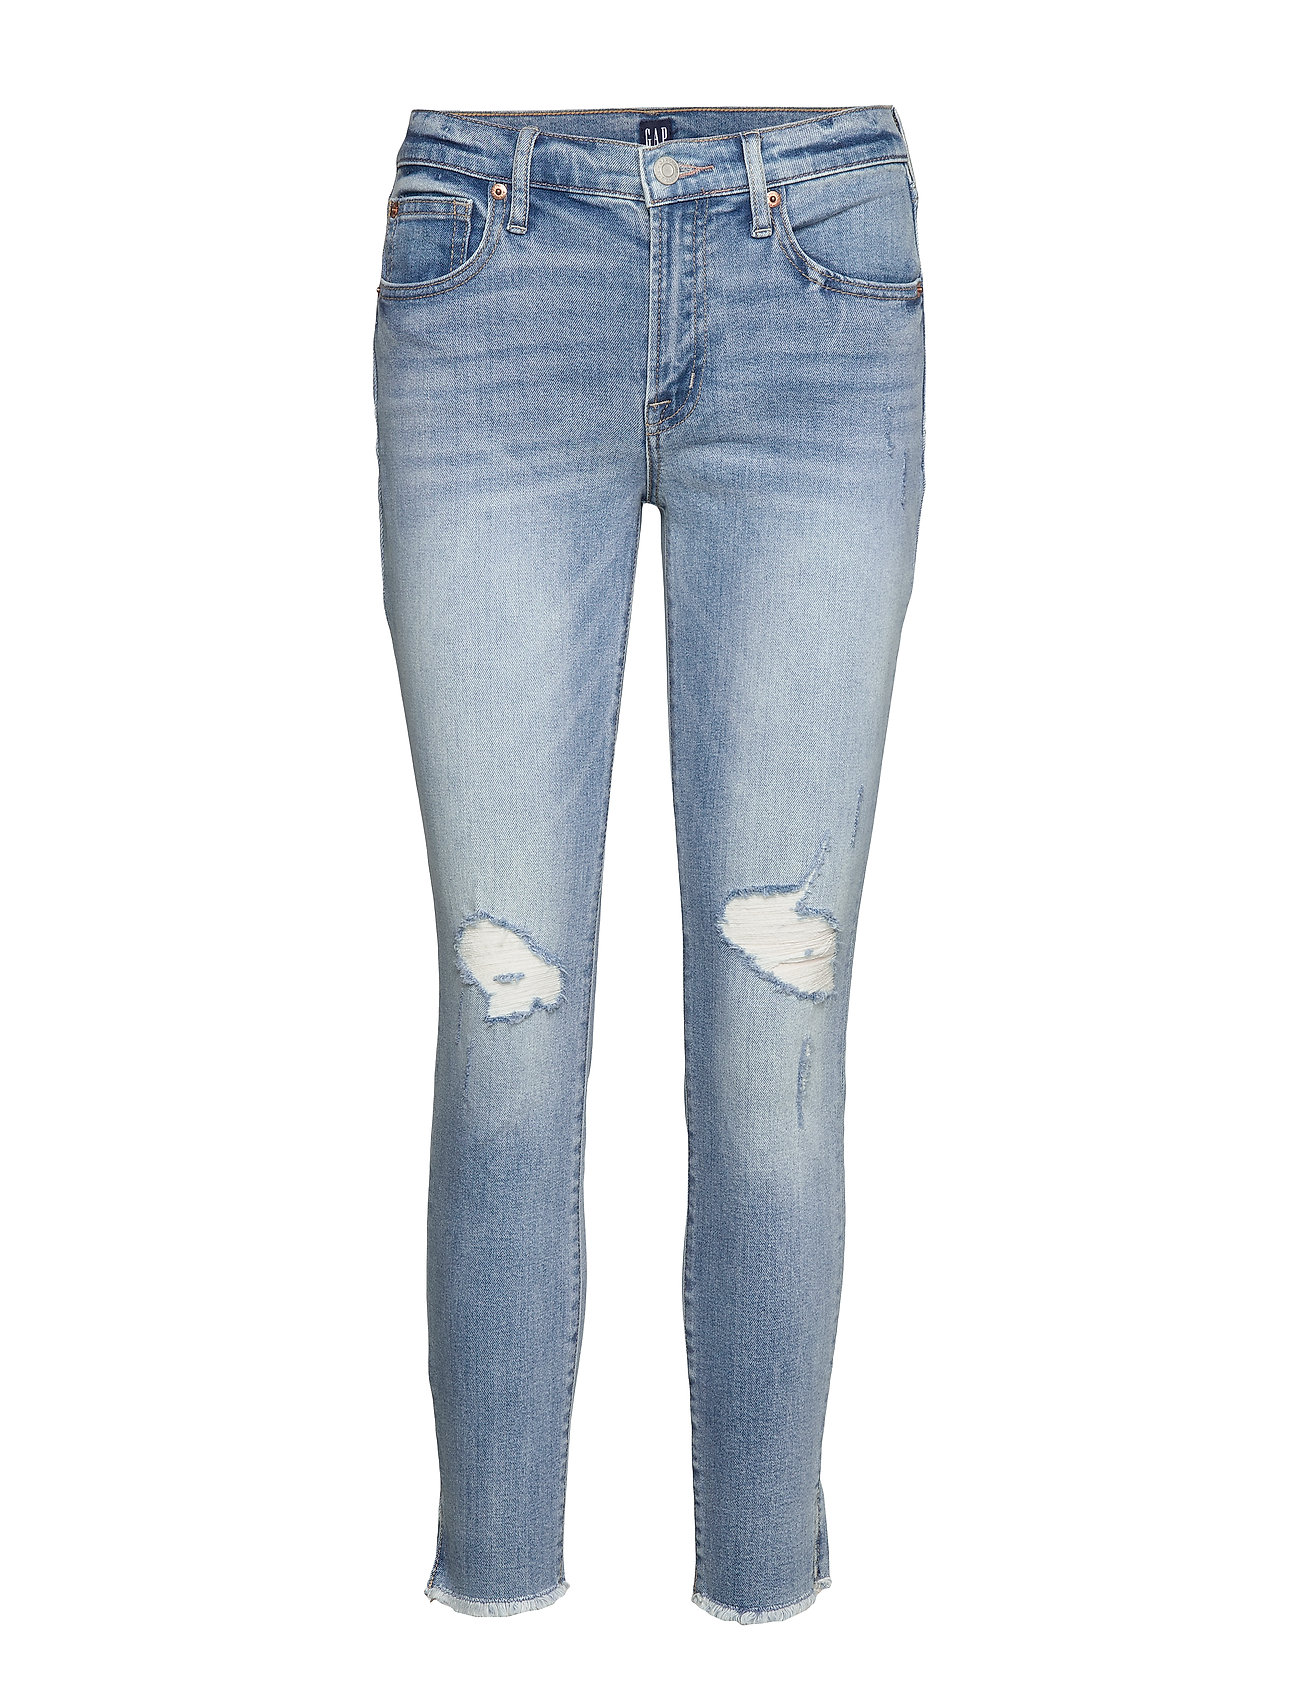 GAP Mid Rise Distressed True Skinny Ankle Jeans - LIGHT DESTROY